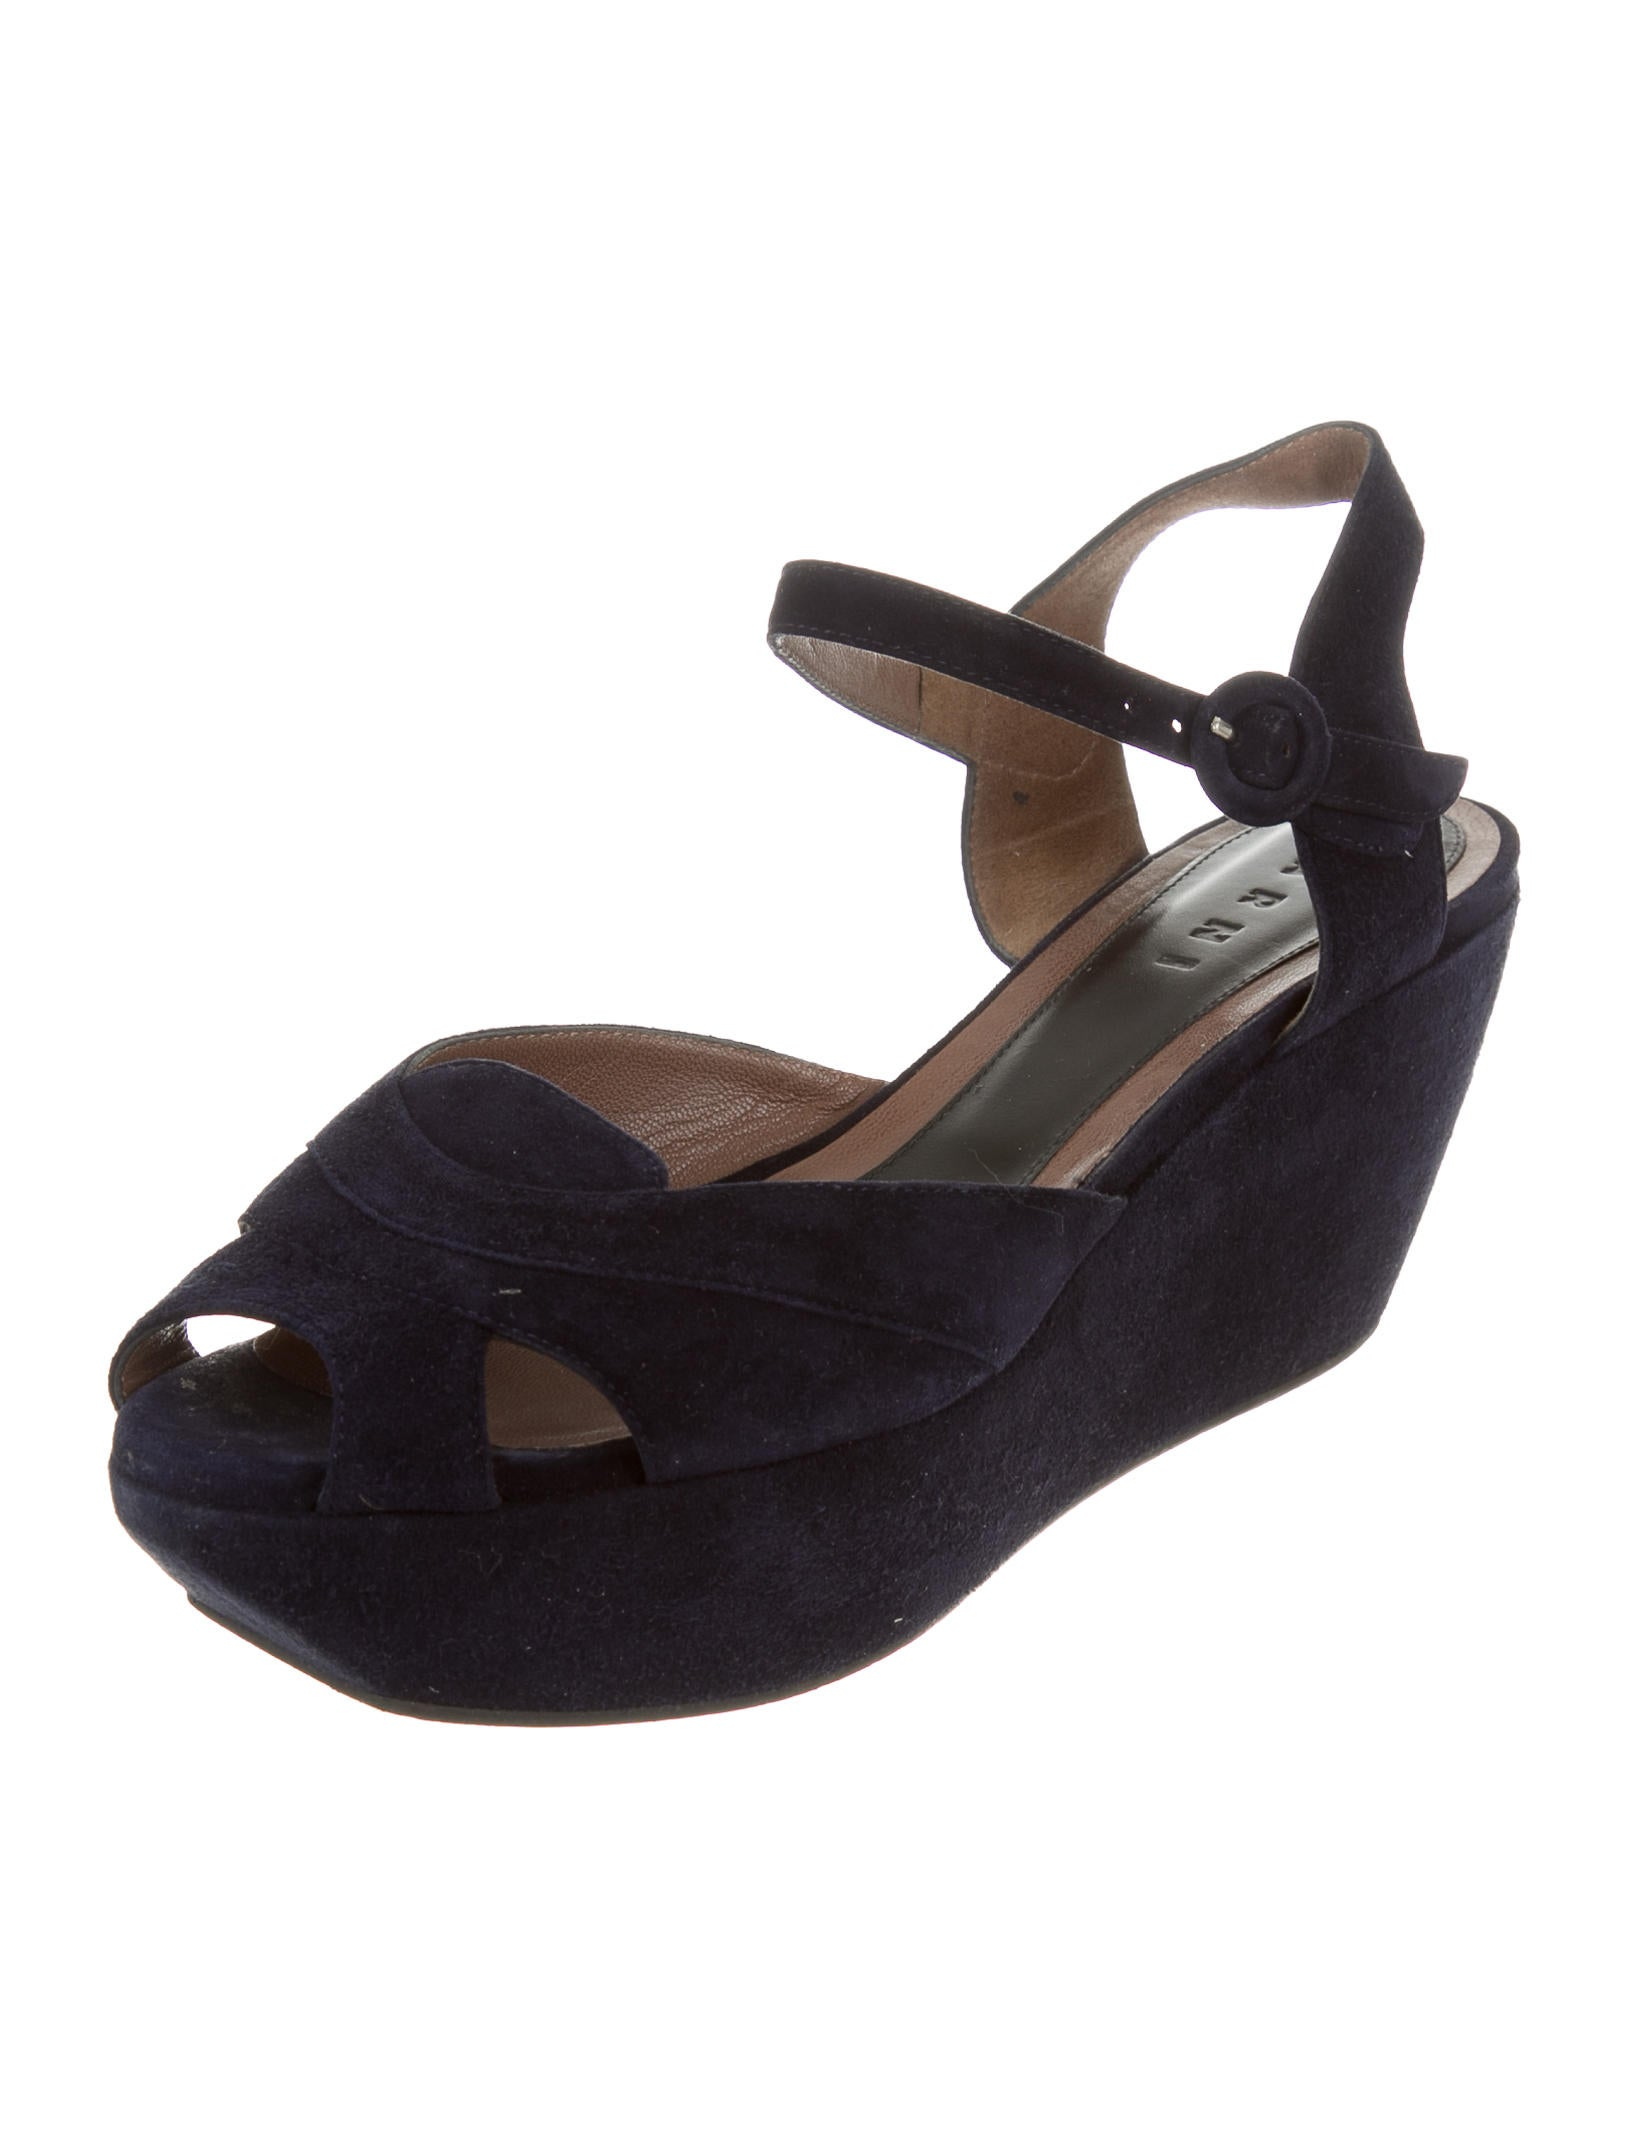 marni suede platform sandals shoes man53428 the realreal